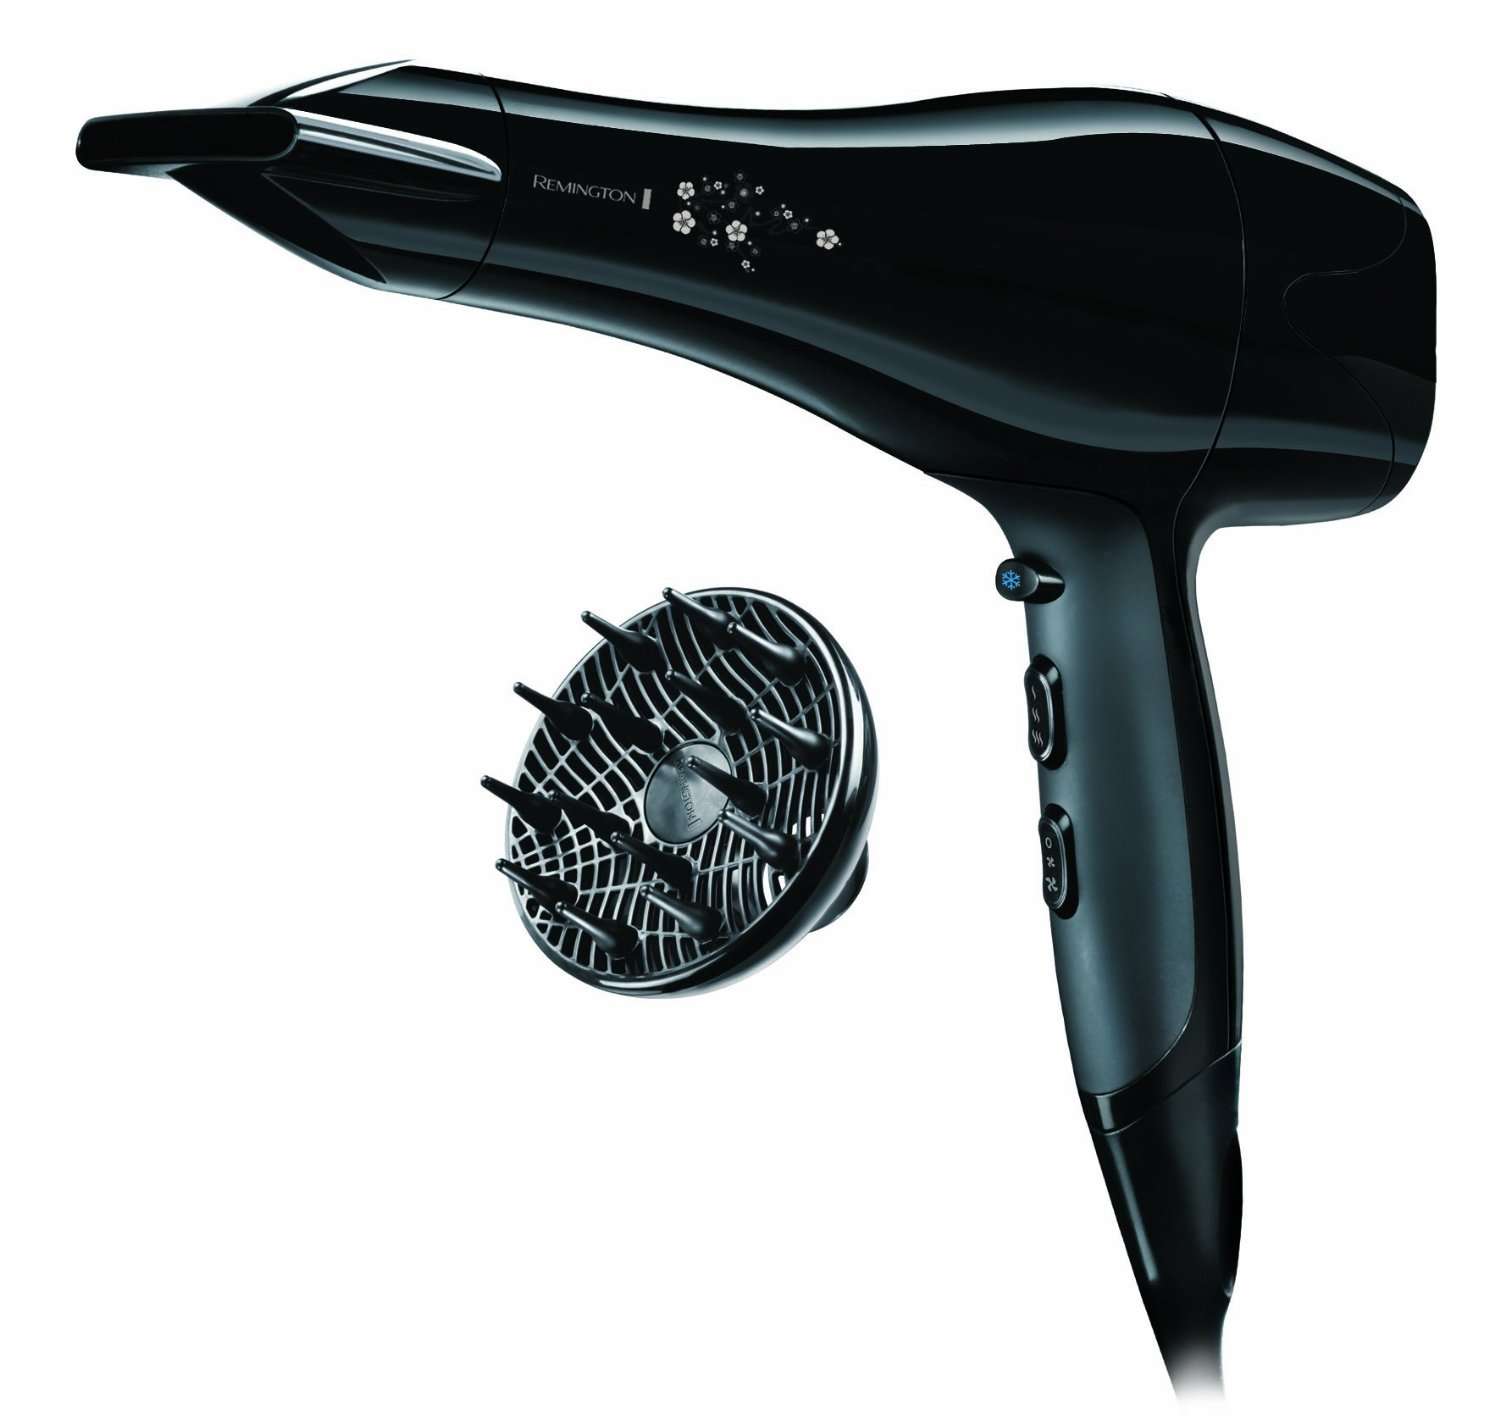 ΣΕΣΟΥΑΡ ΜΑΛΛΙΩΝ Remington AC5011 Pearl Hair Dryer Black 2200W